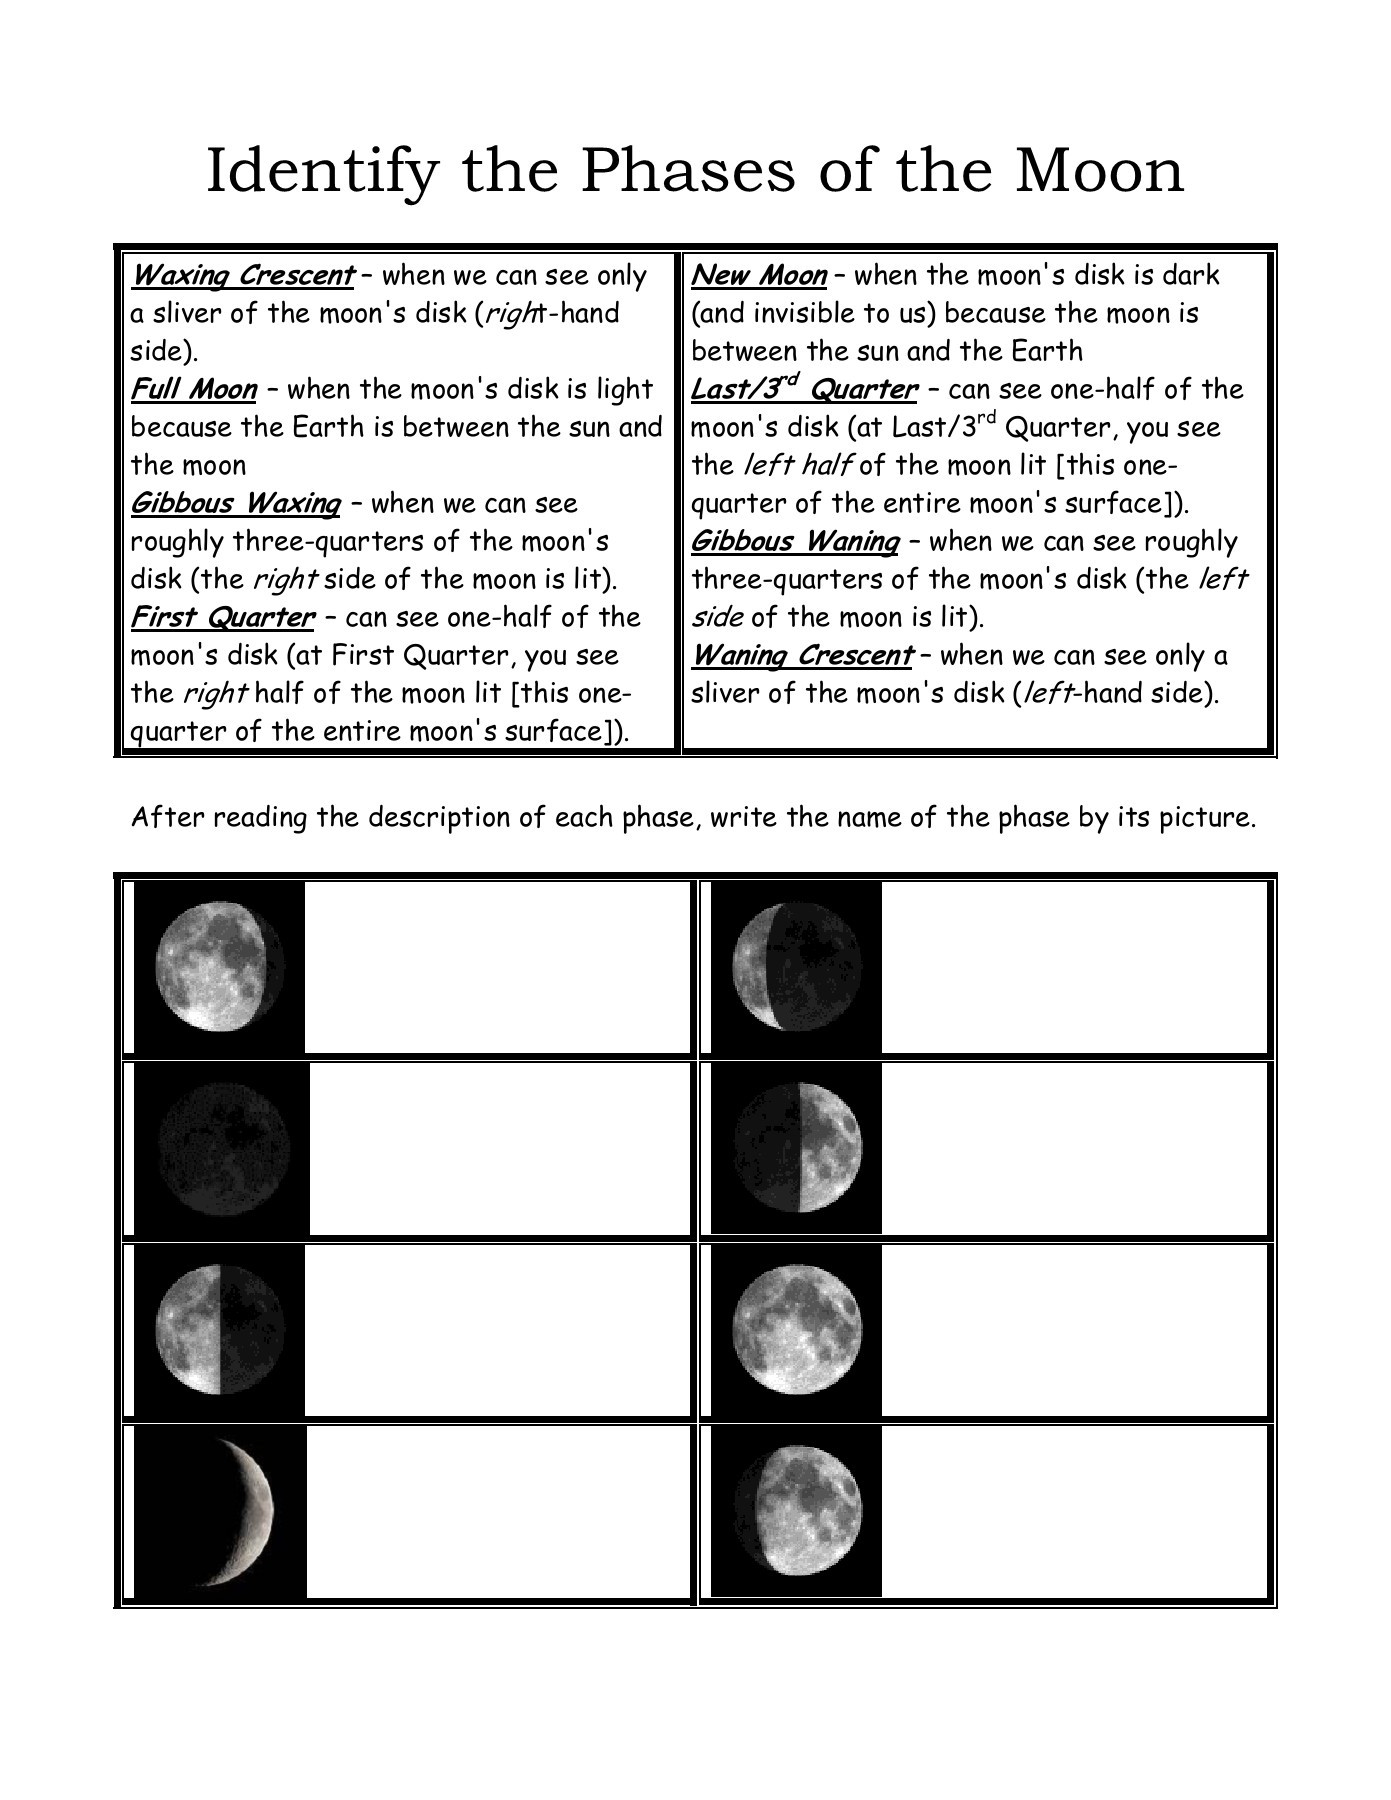 Moon Phases Worksheet Answers Name Identifying Phases Of the Moon Mrscienceut Pages